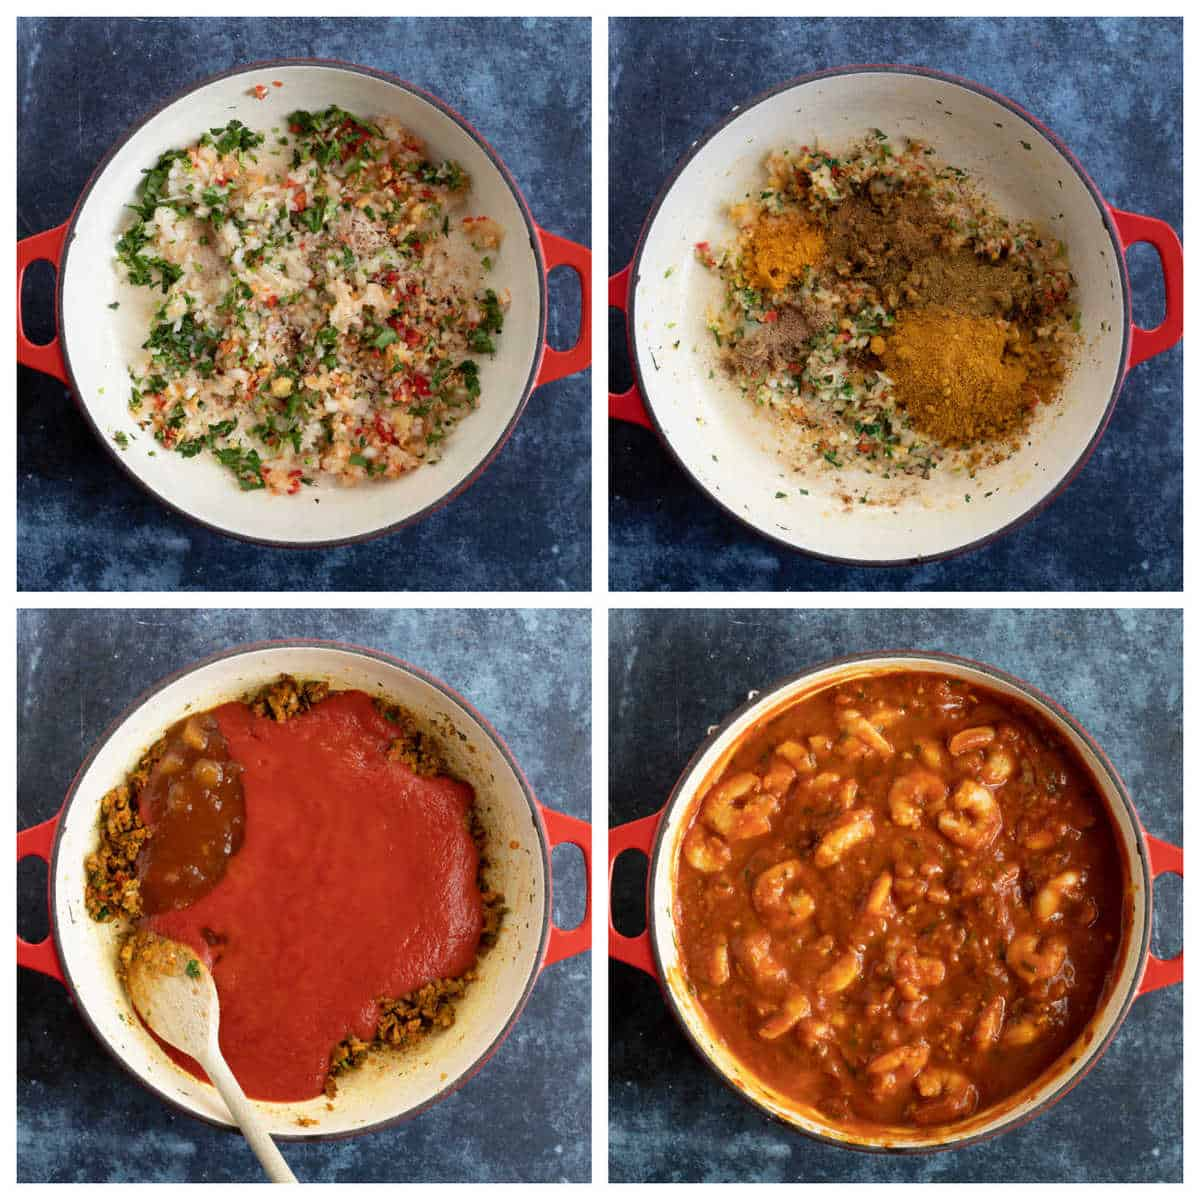 Step by step photo instructions for making prawn bhuna.